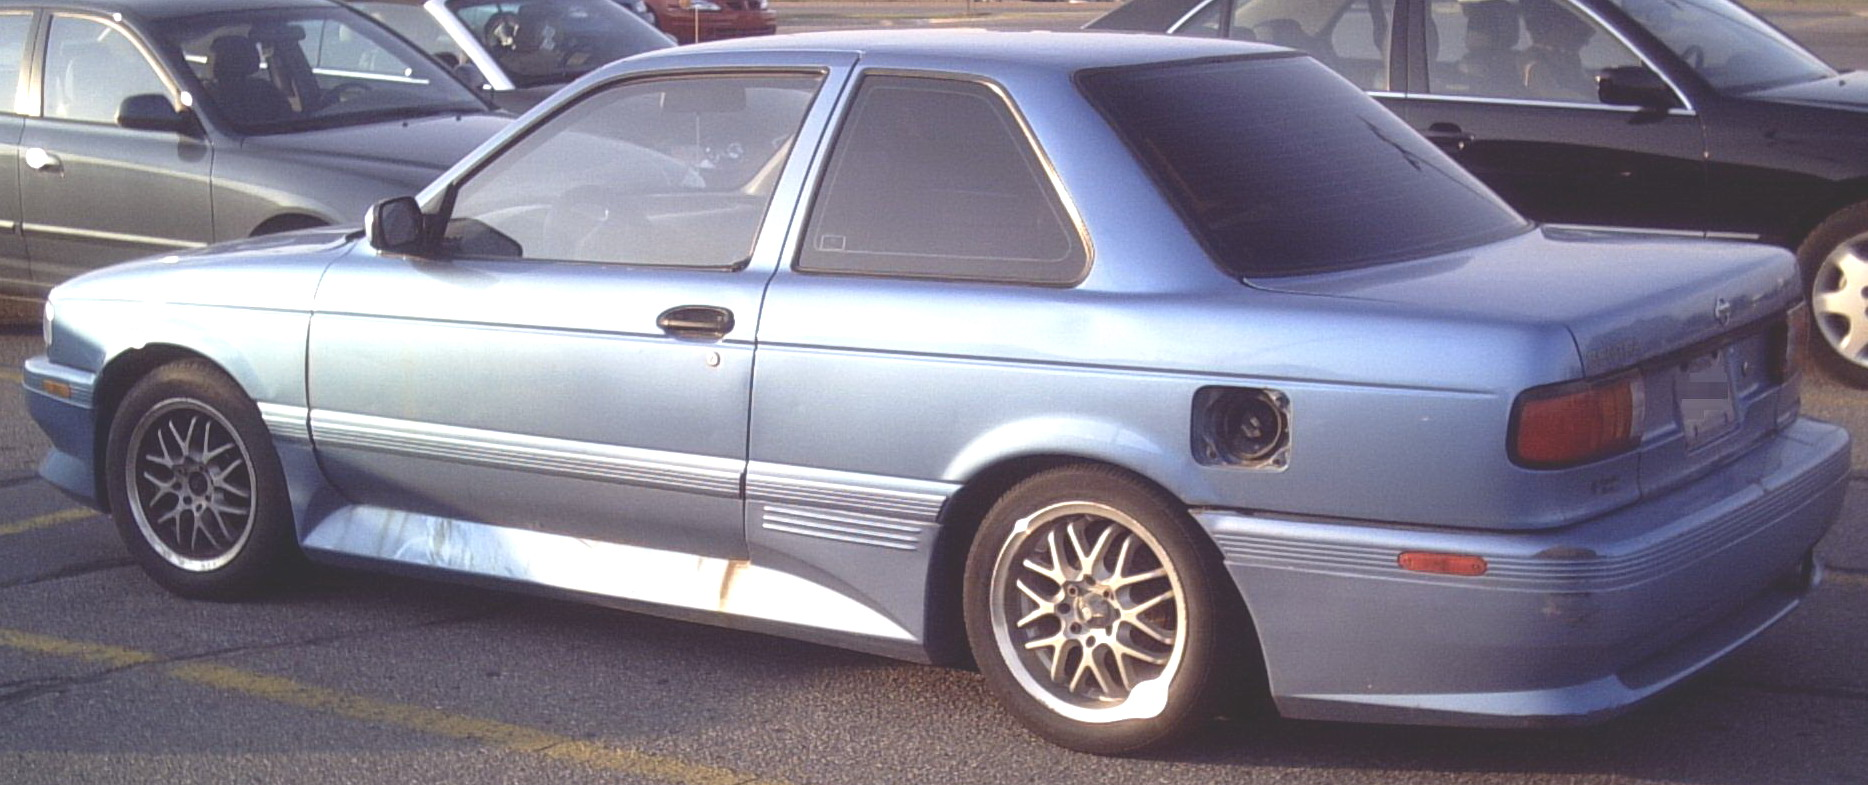 File:1991-1994 Sentra Coupe.jpg - Wikimedia Commons